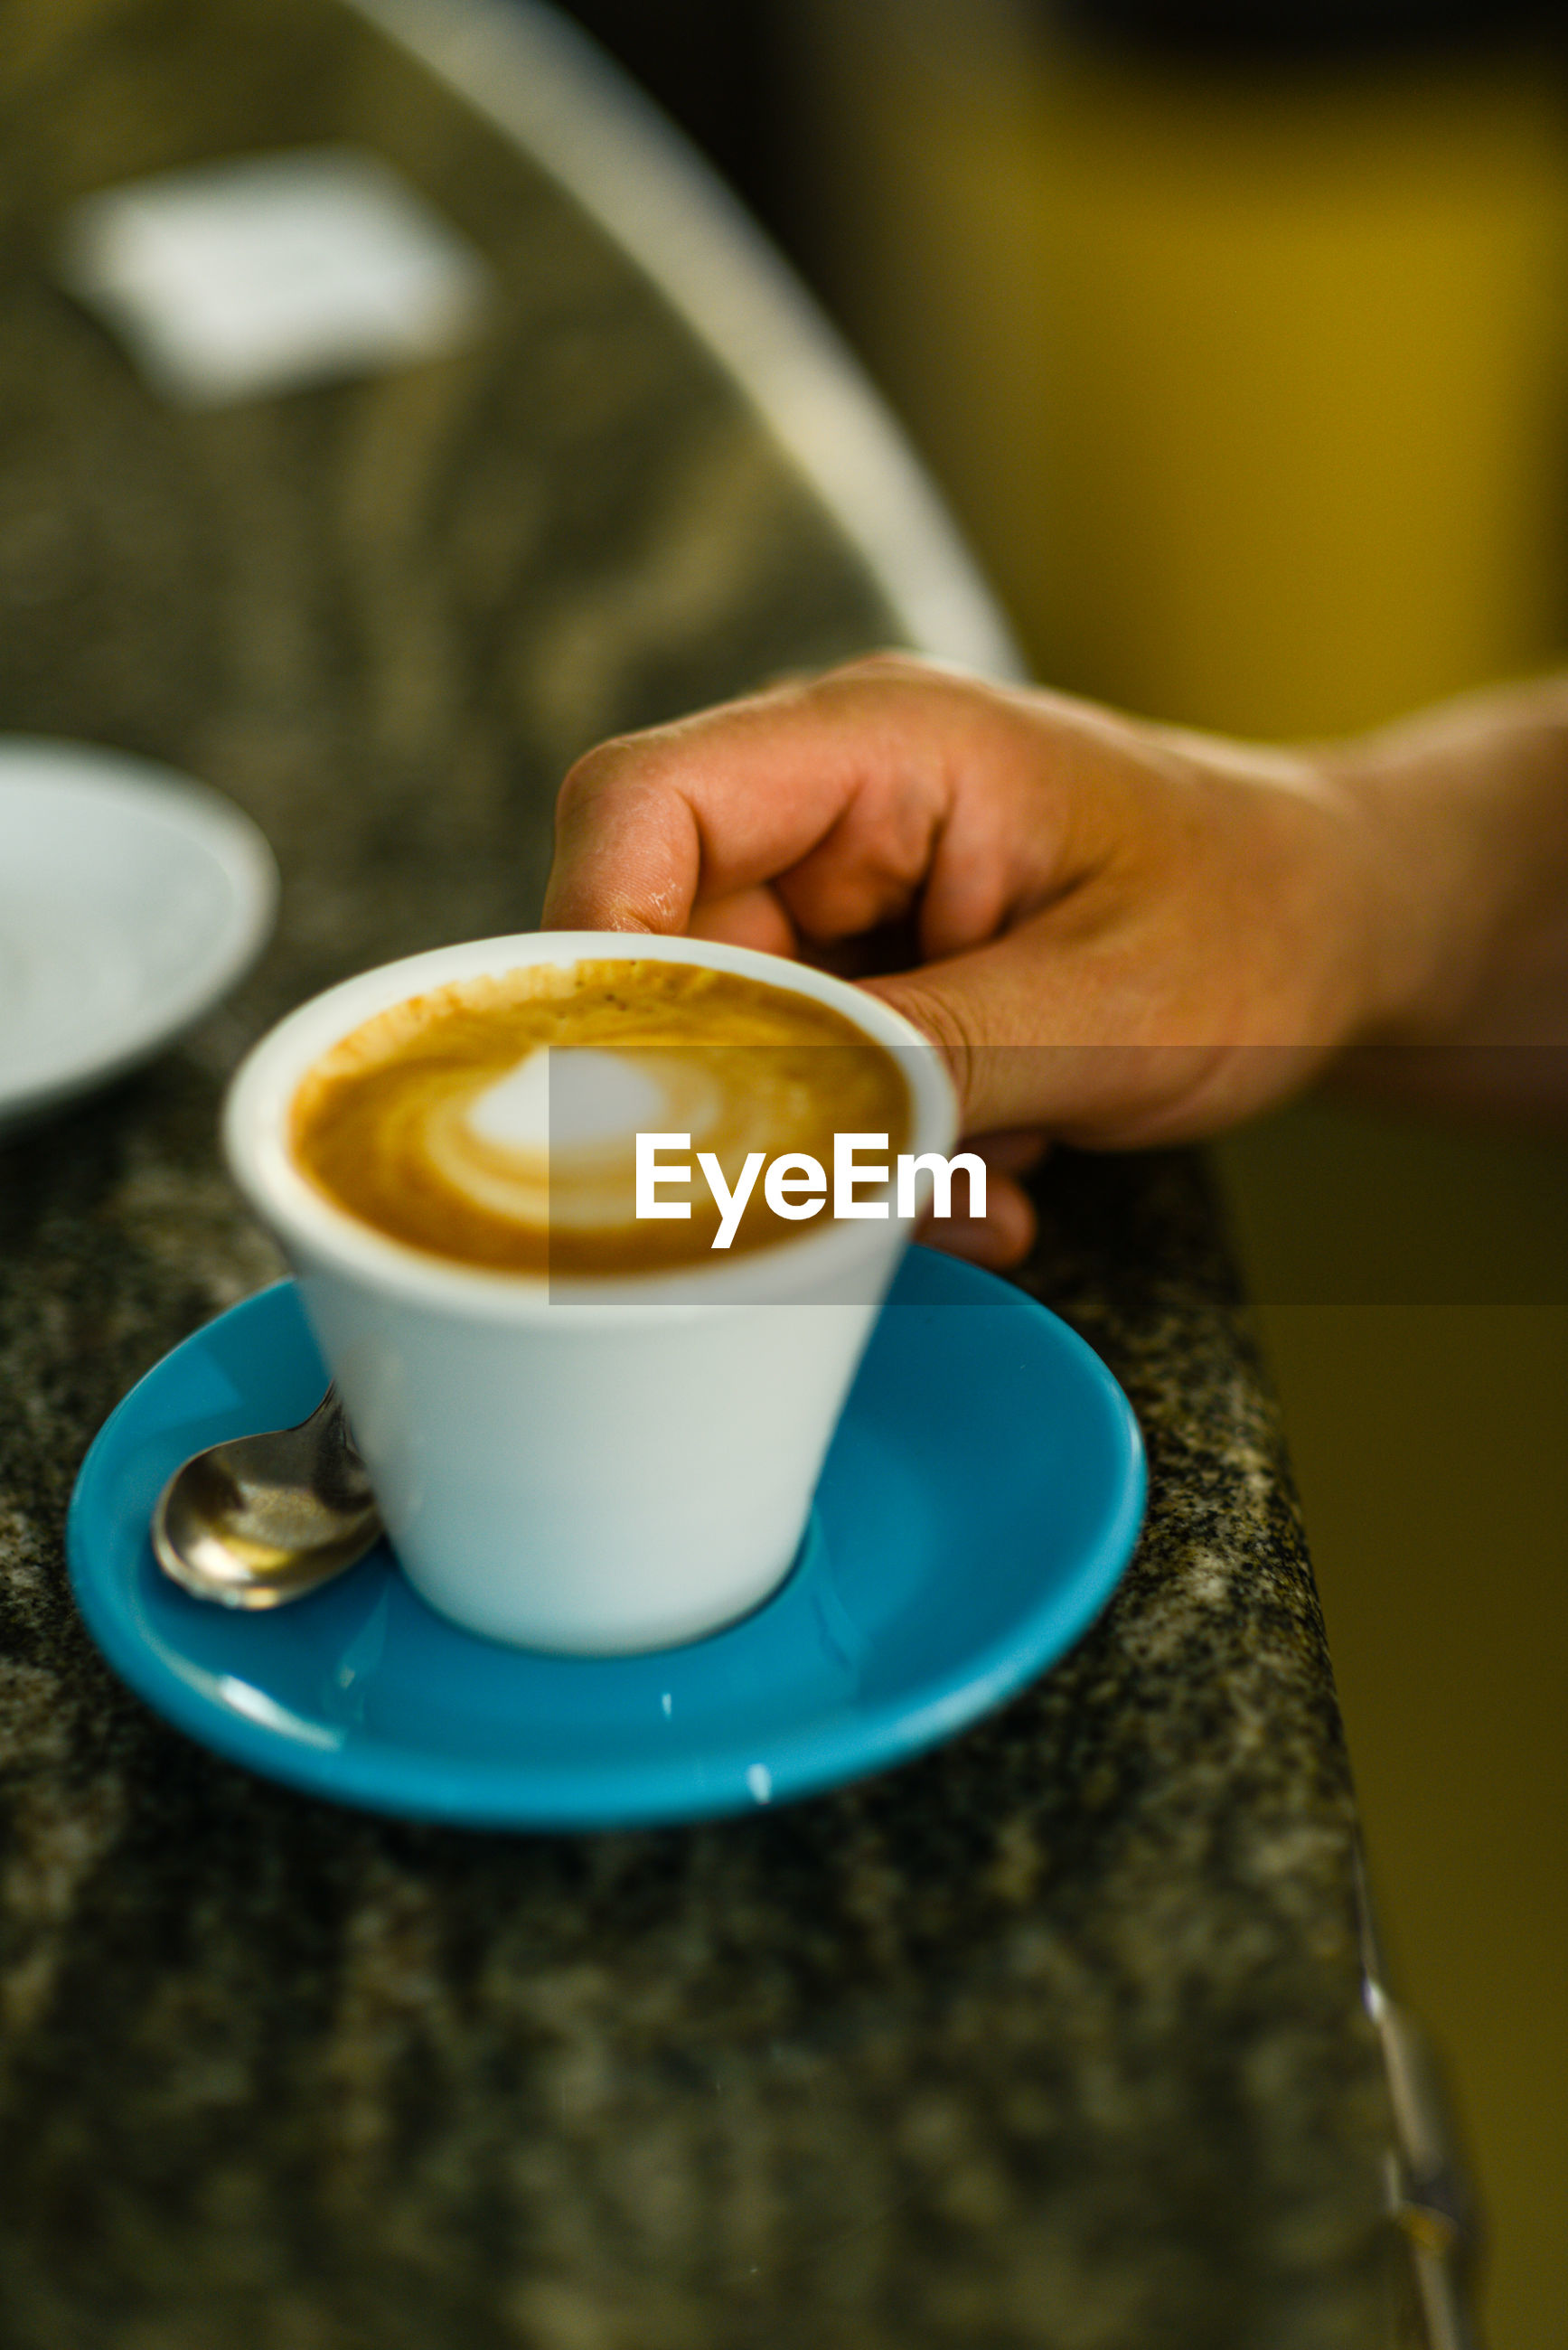 CROPPED IMAGE OF COFFEE CUP WITH TEA